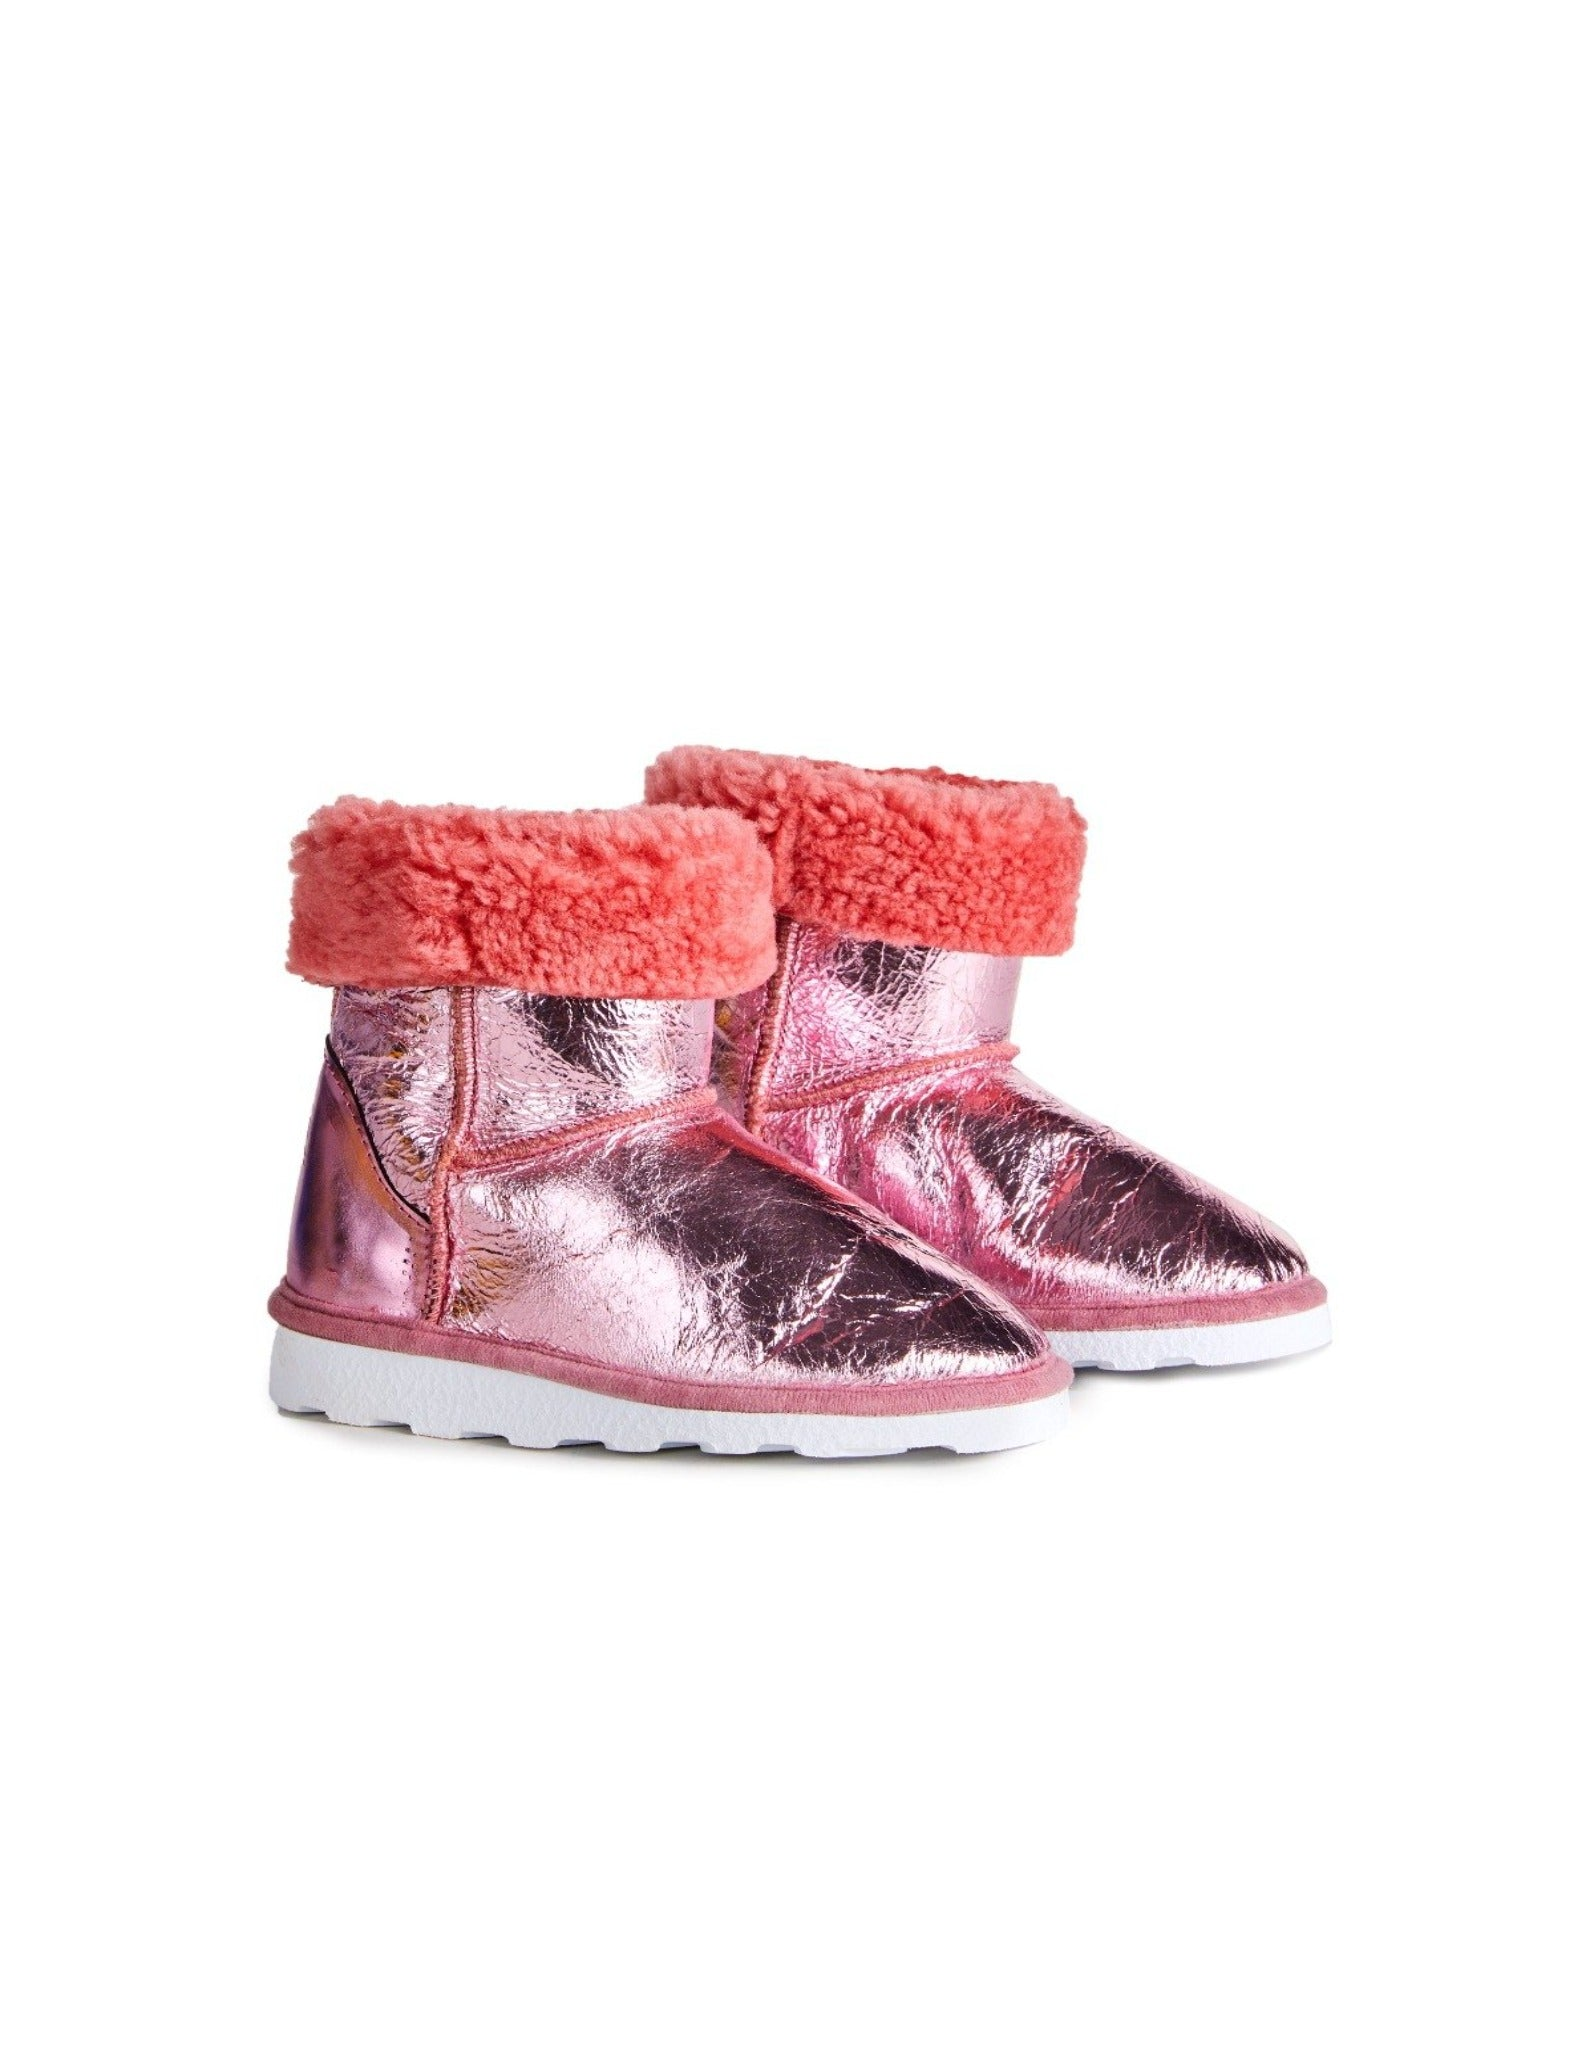 M'A KIDS LEATHER BOOTS IN PINK